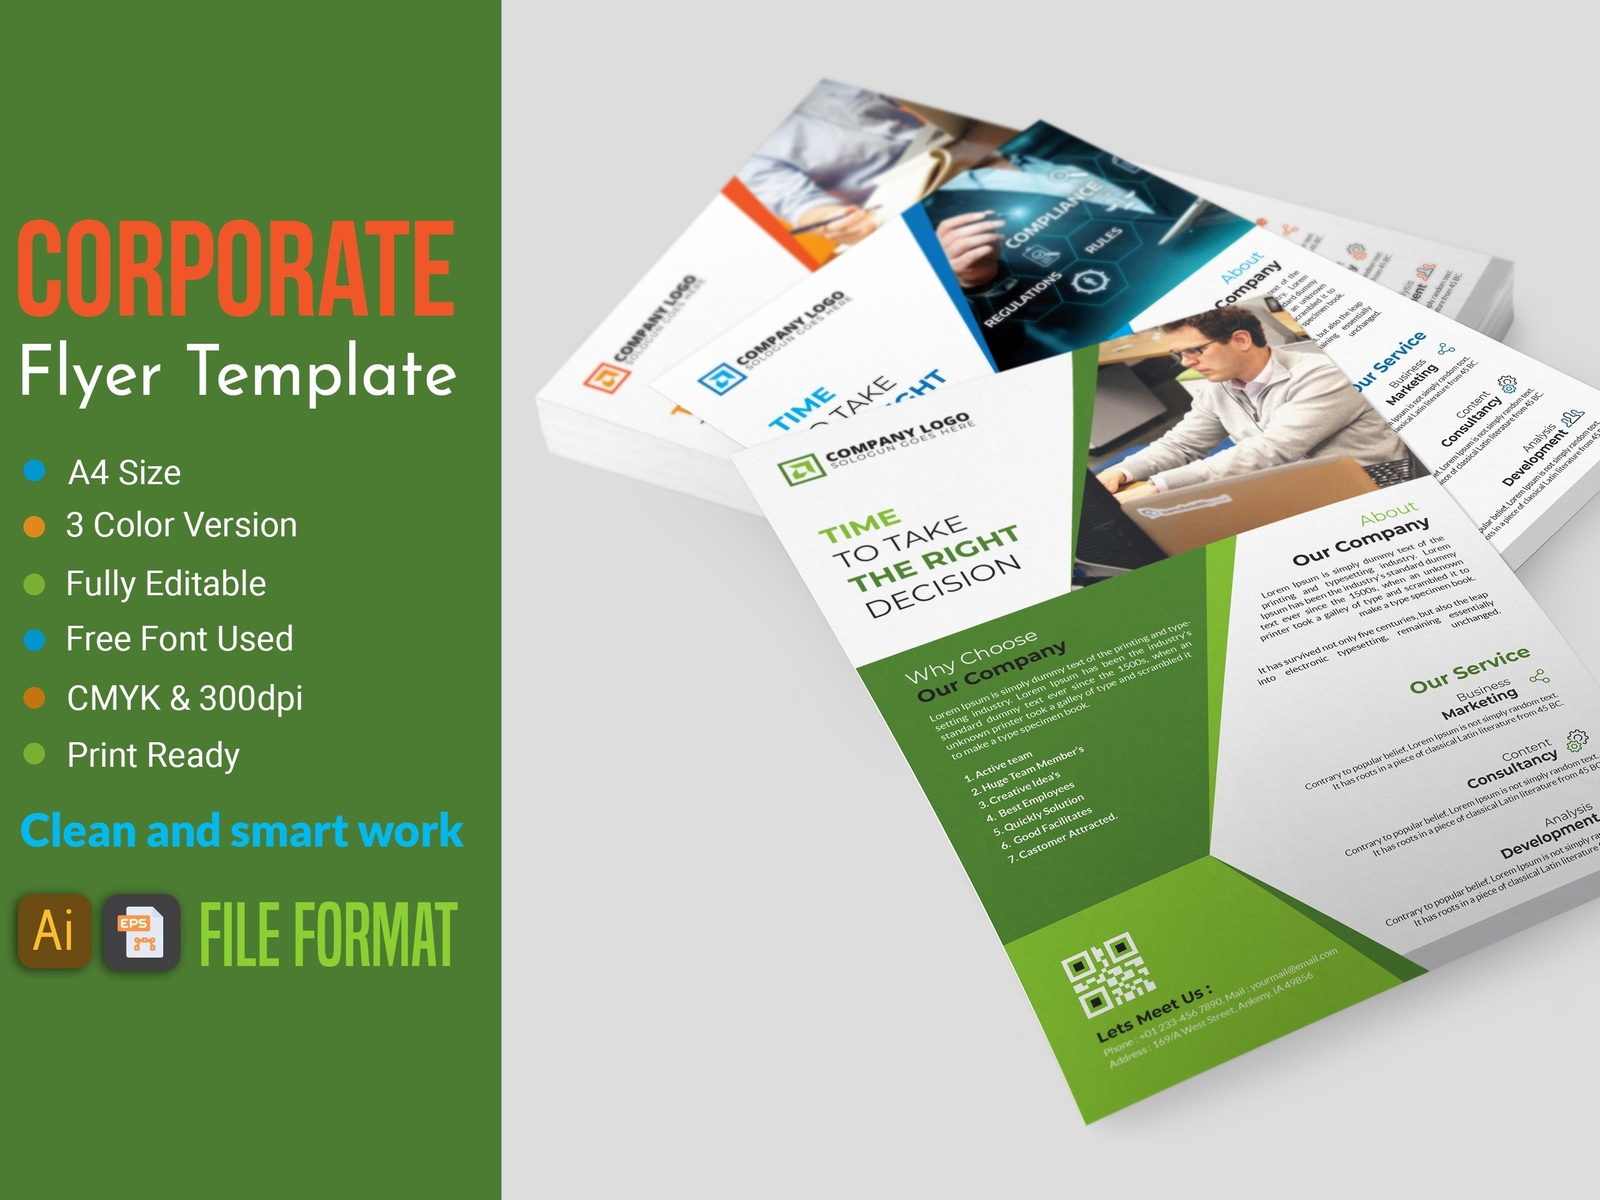 This is Professional Corporate Flyer Template You